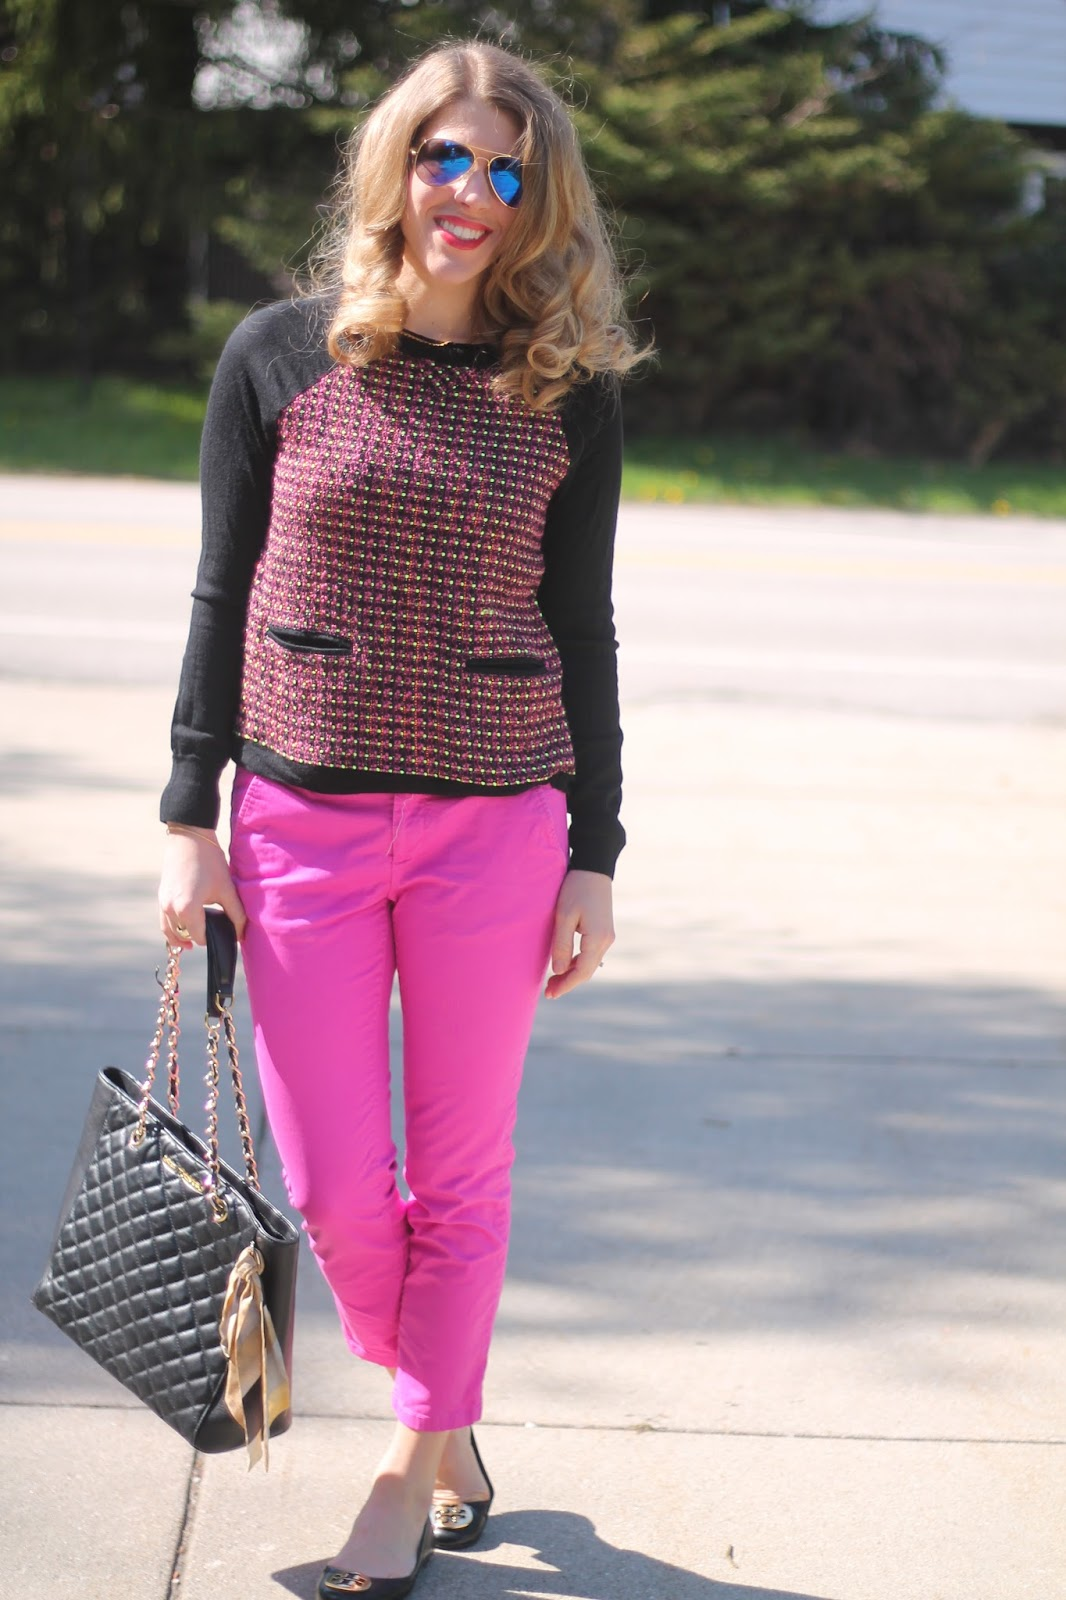 J.Crew pink and black tweed sweater, pink ankle pants, Tory Burch Revas, Greg Michaels black leather quilted tote, Ray Ban aviators